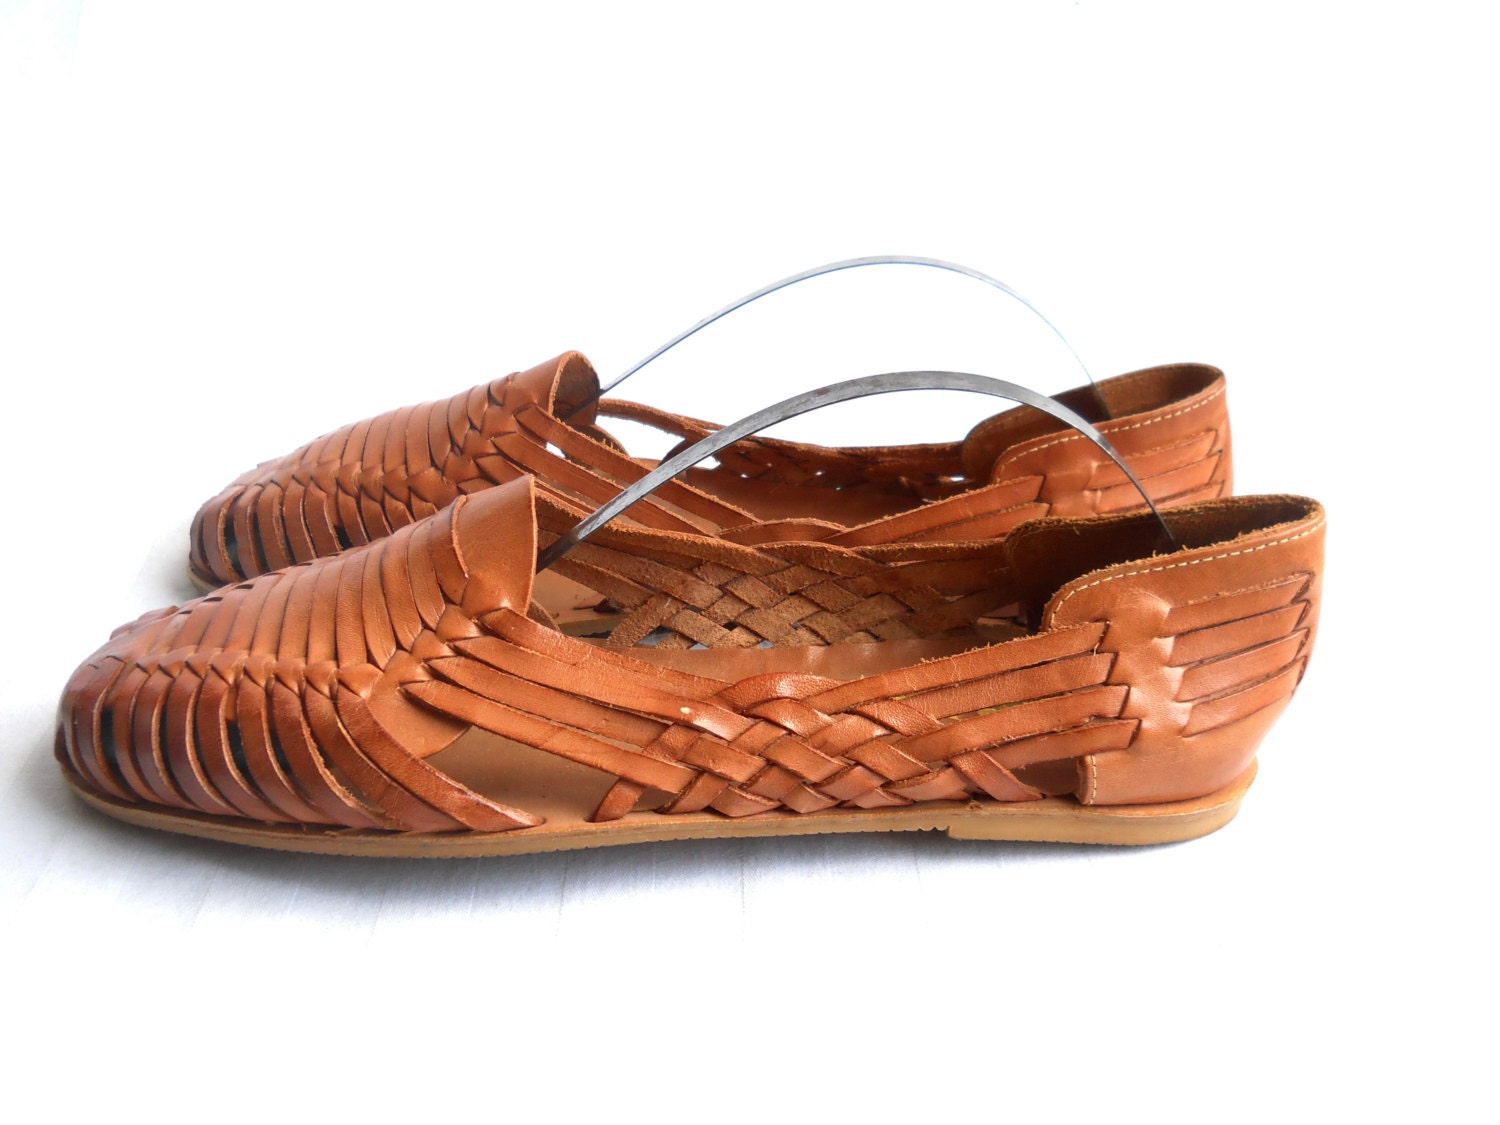 Boho Chic Shoes Woven Leather Sandal Woven Leather Flats Brown